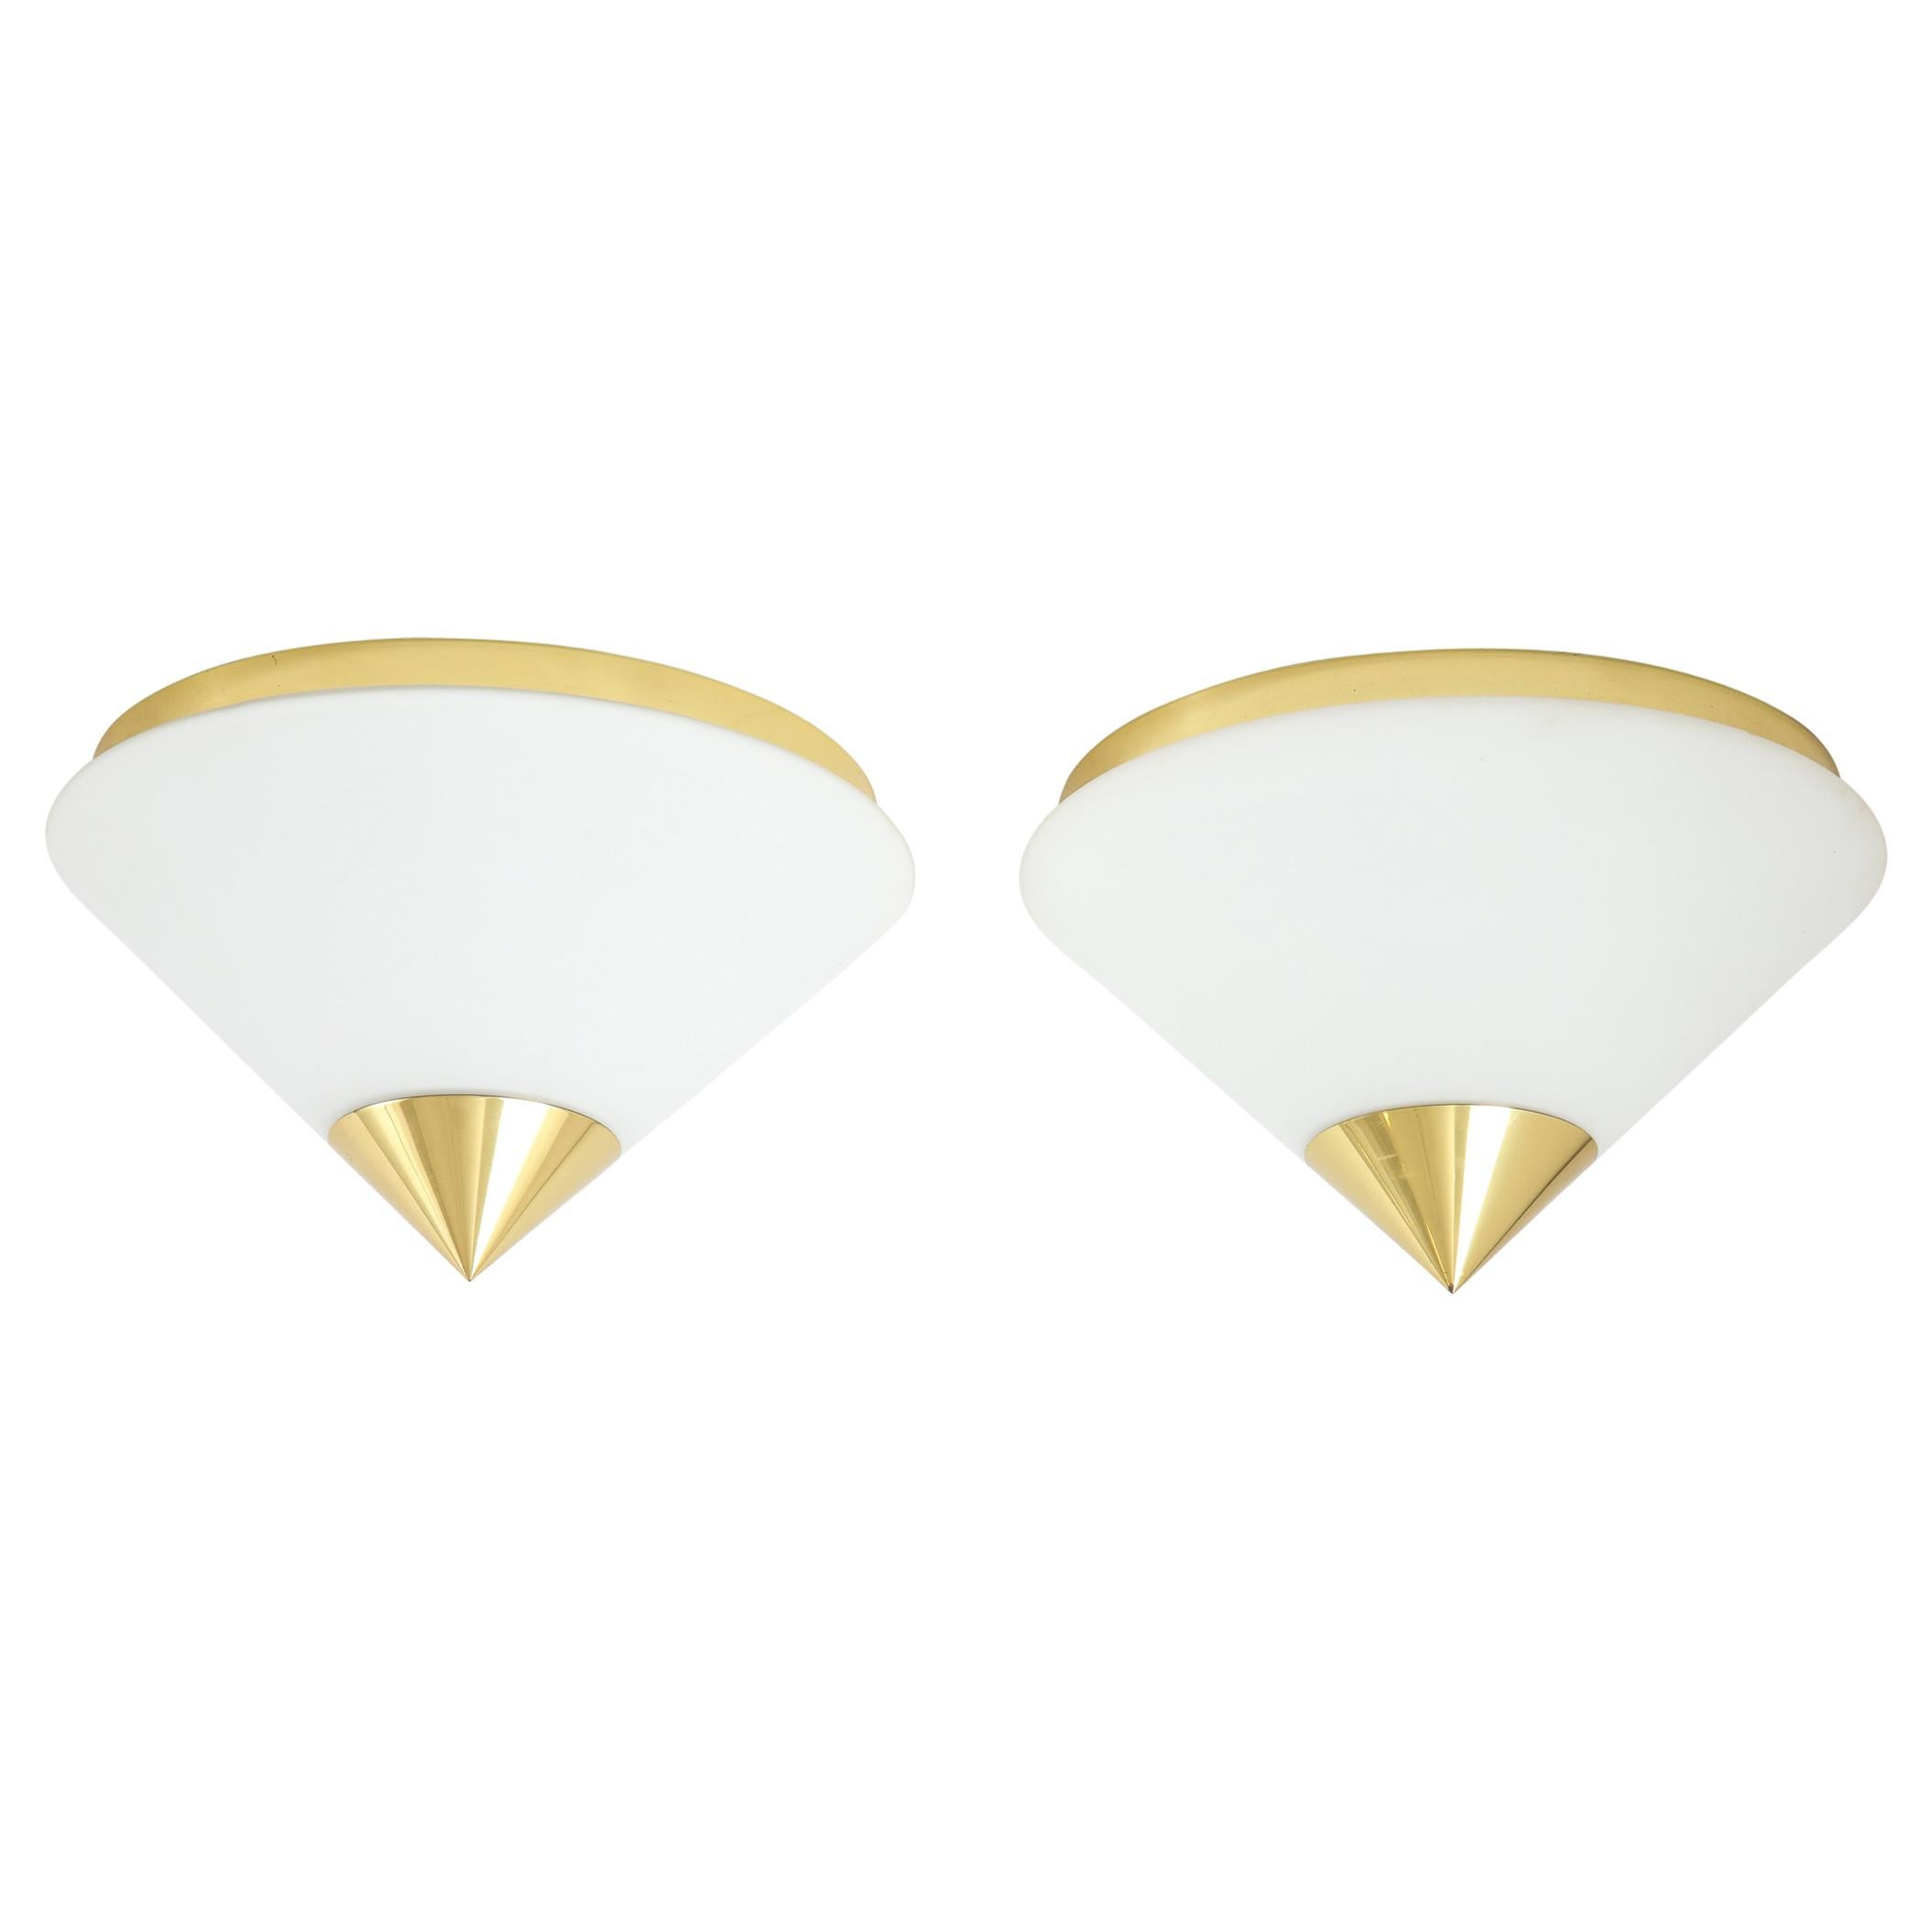 Pair of 1970s Opaline and Brass Flush Mount / Sconce by Limburg